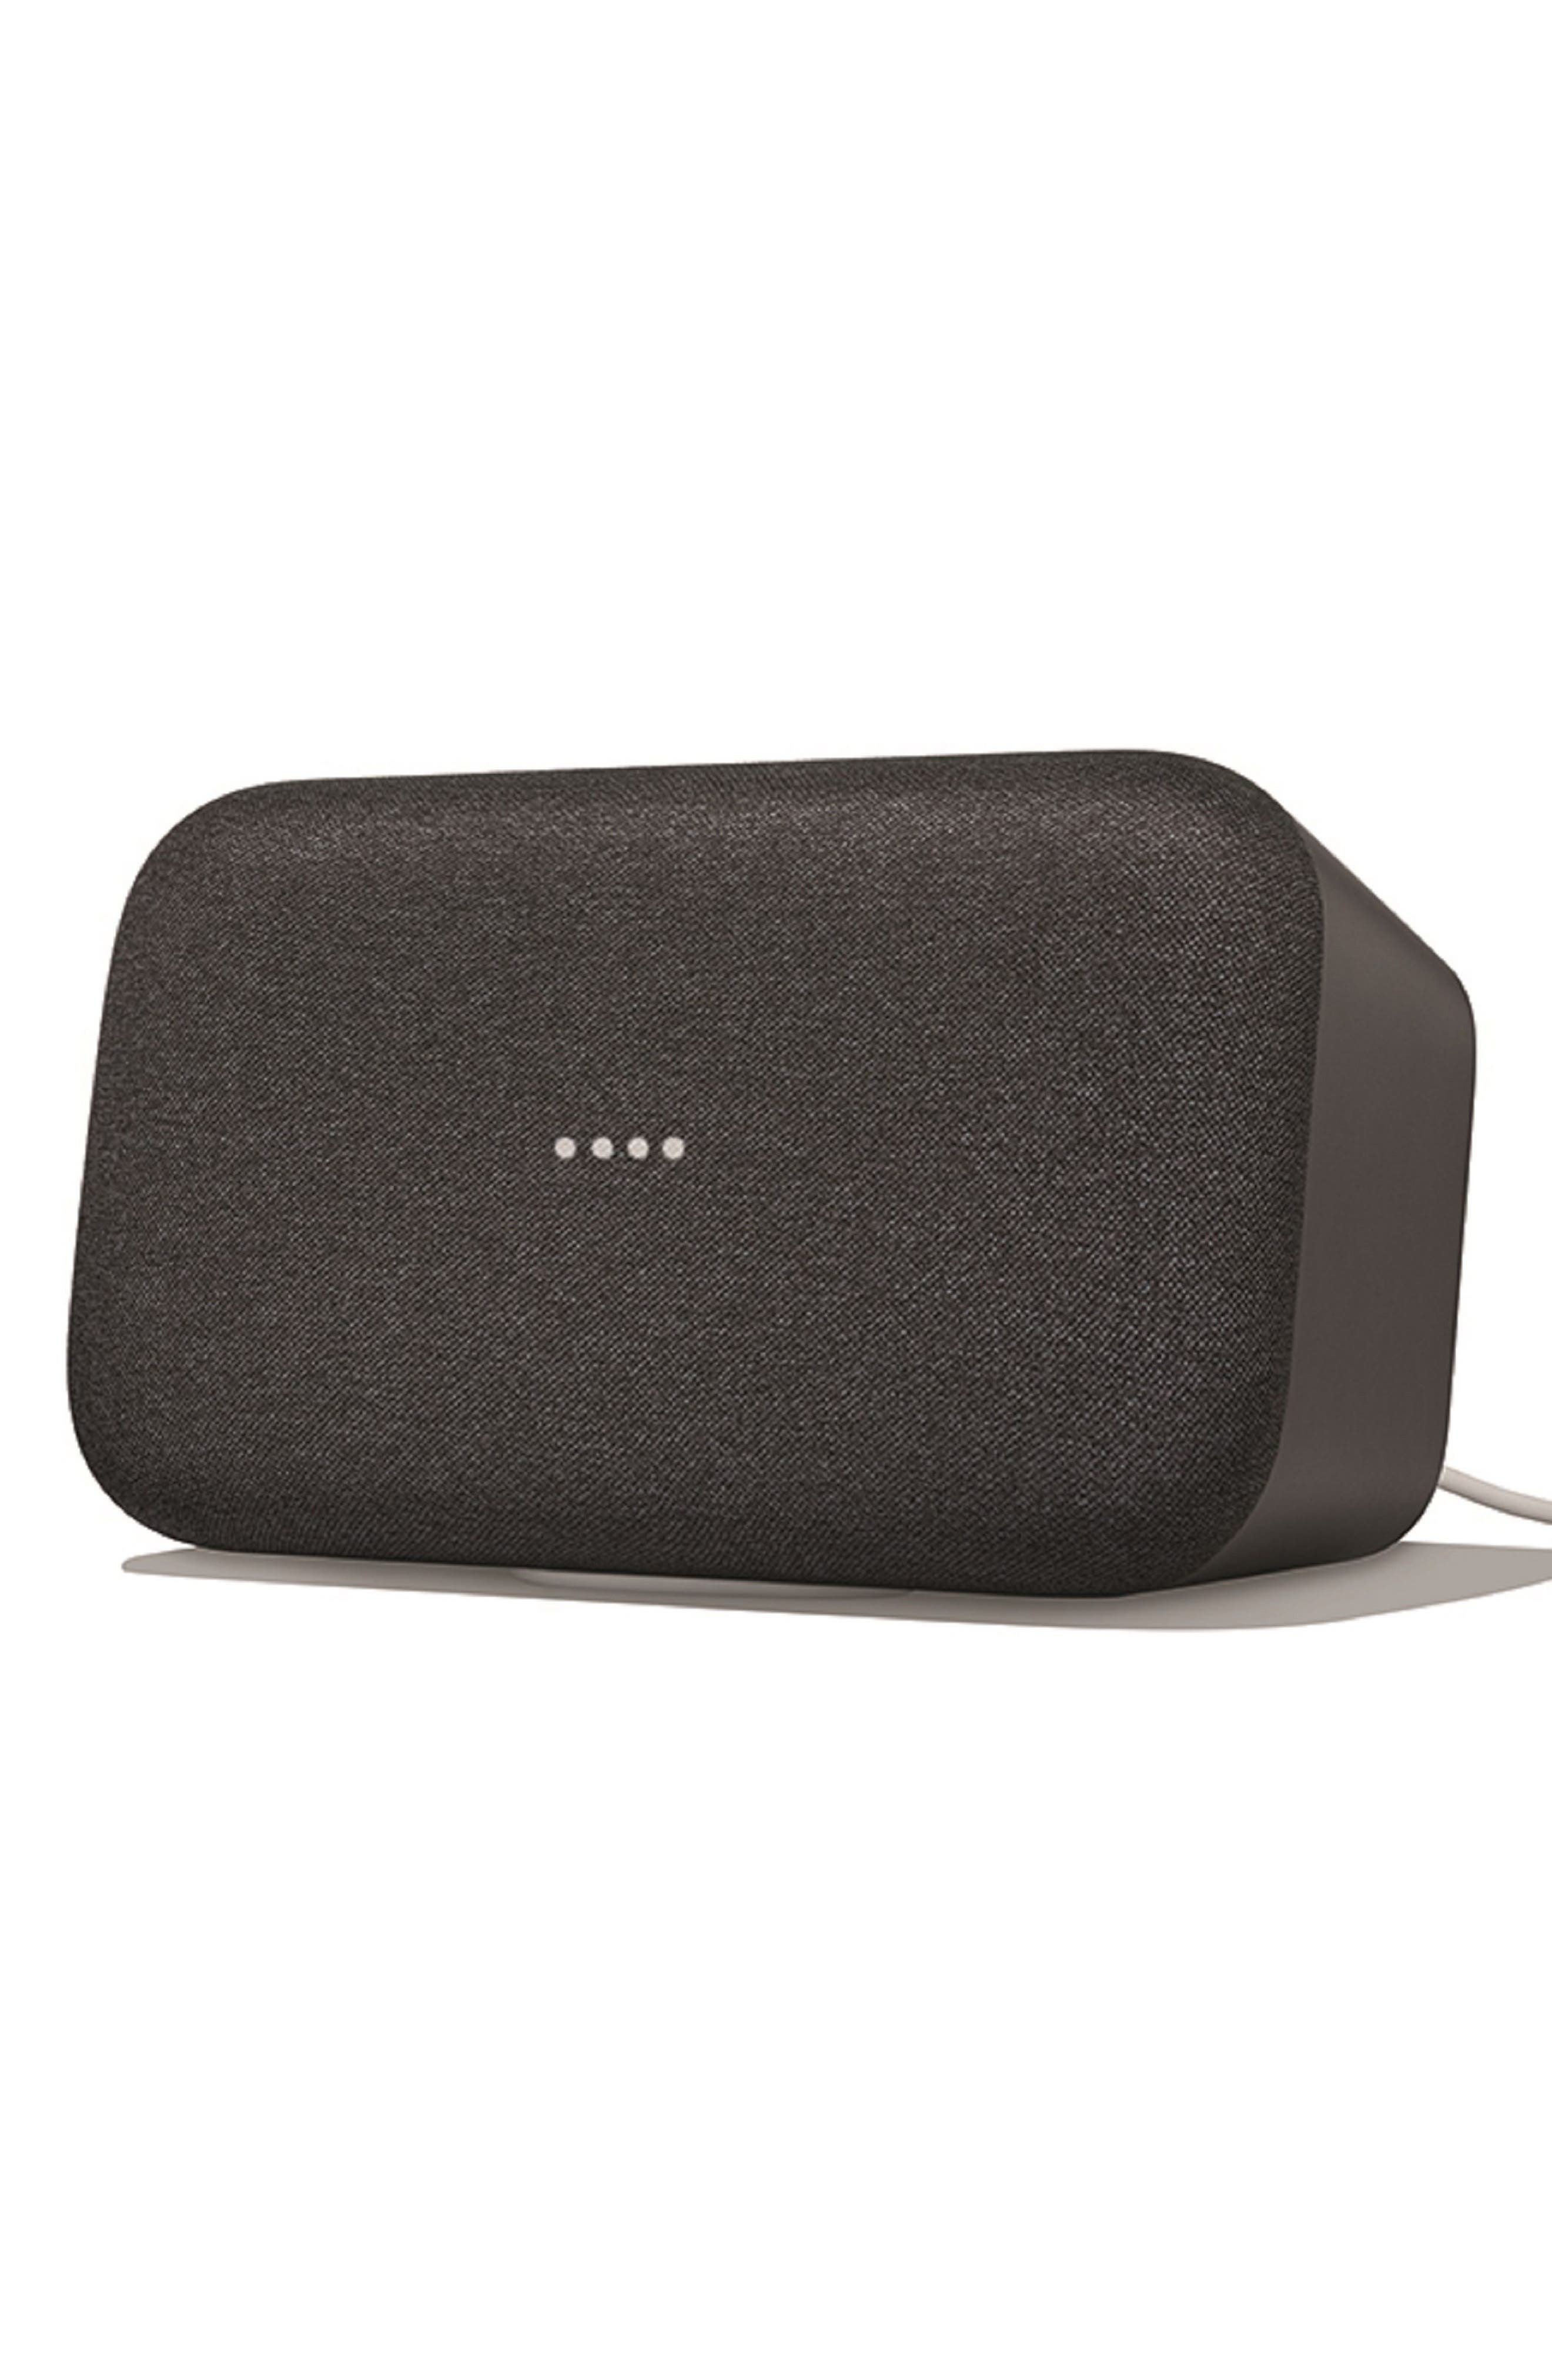 Home Max Wireless Speaker,                         Main,                         color, Charcoal